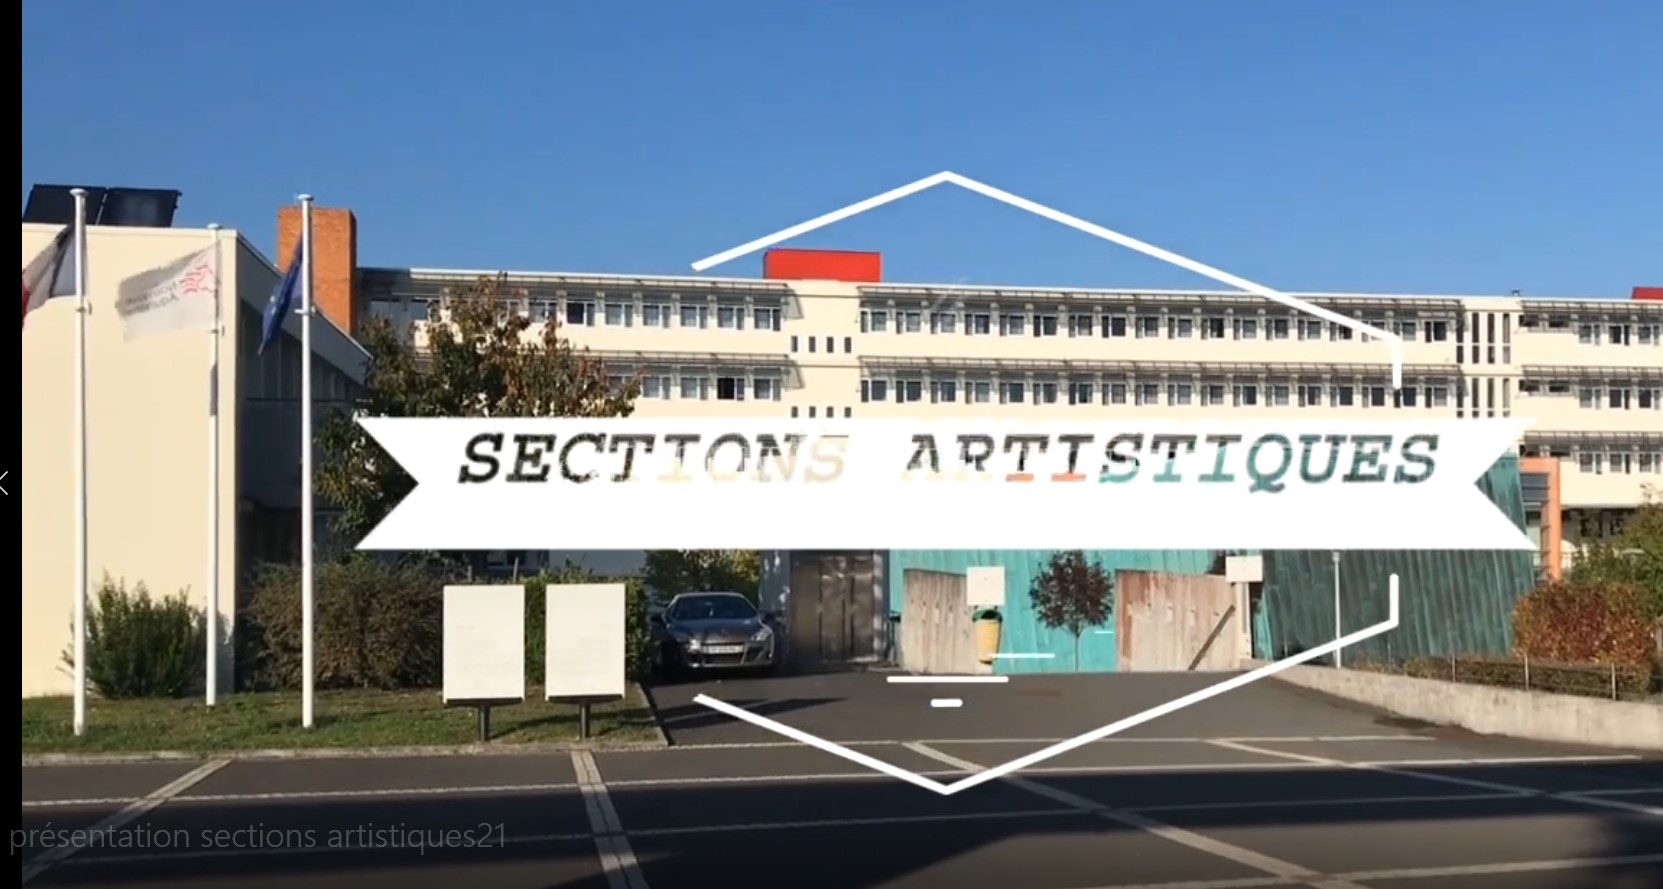 Sections artistiques